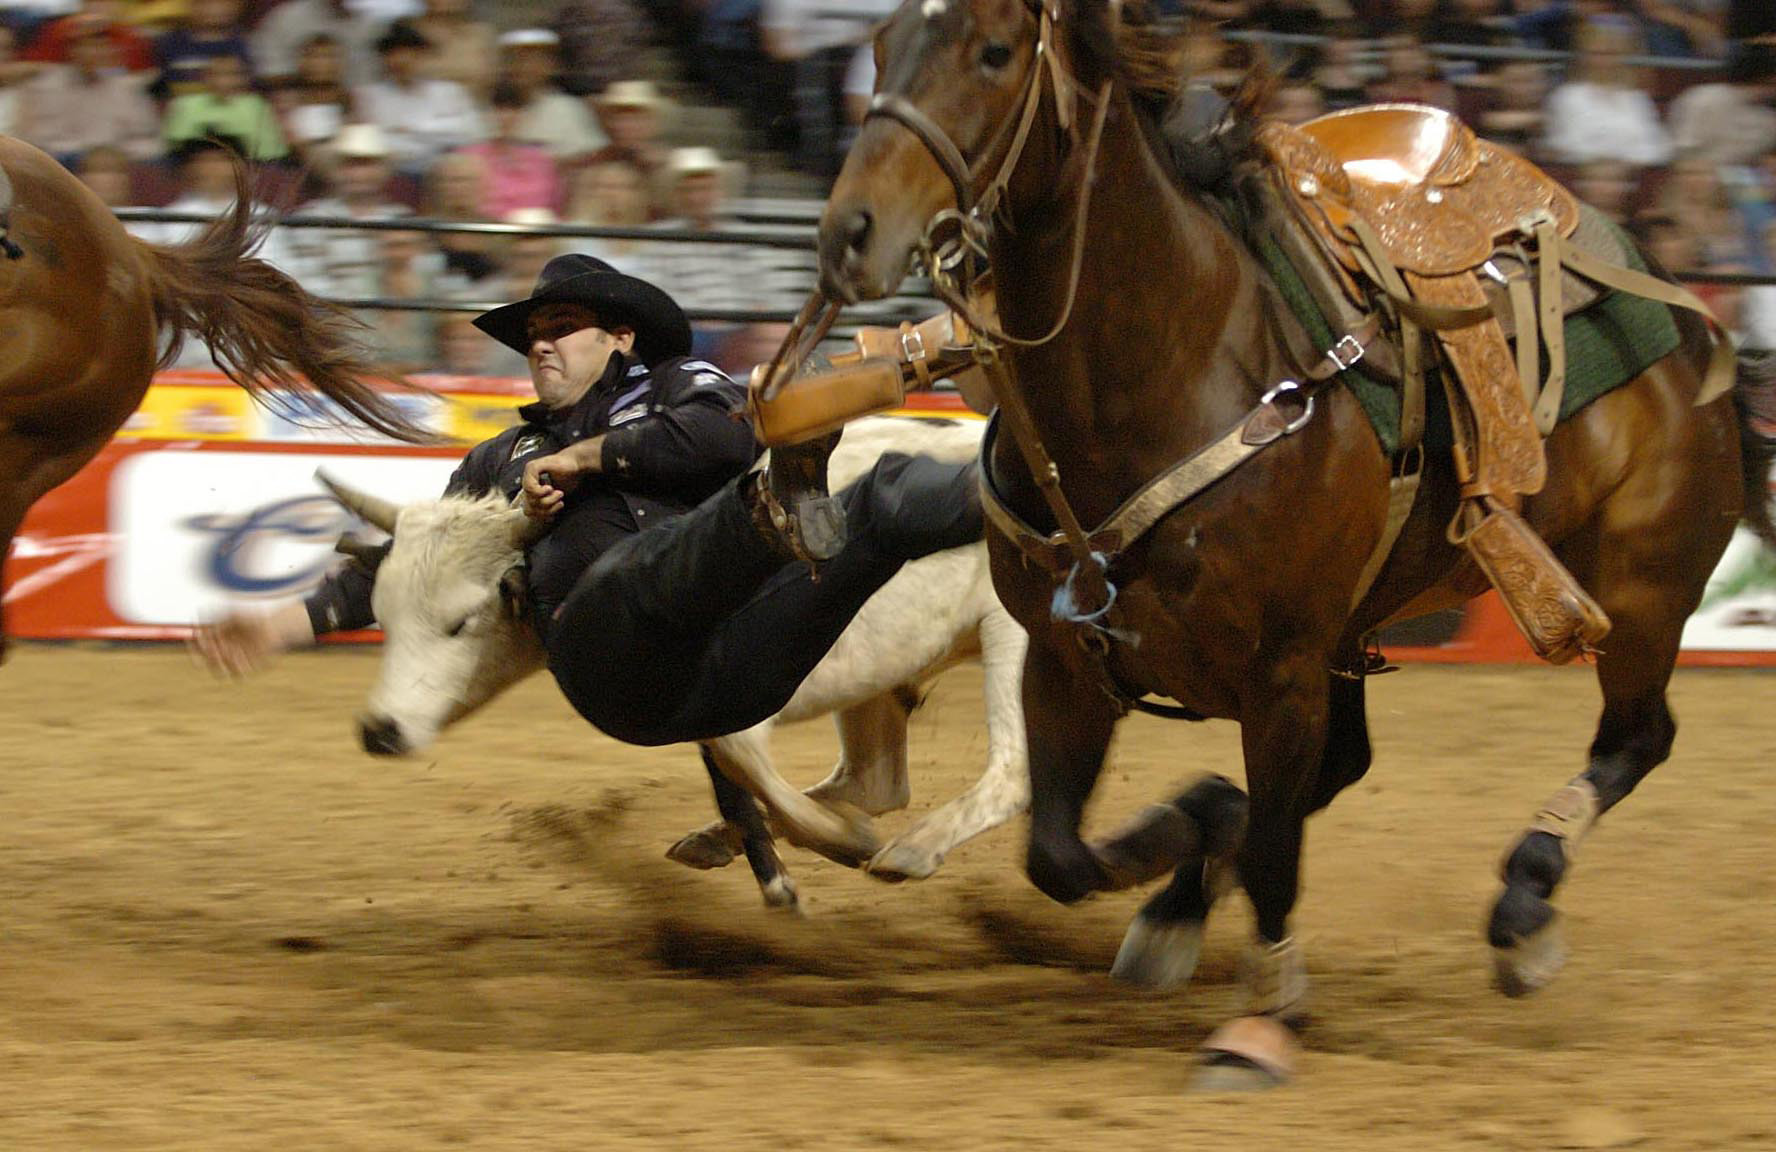 national finals rodeo nfr known popularly as the super bowl of rodeo